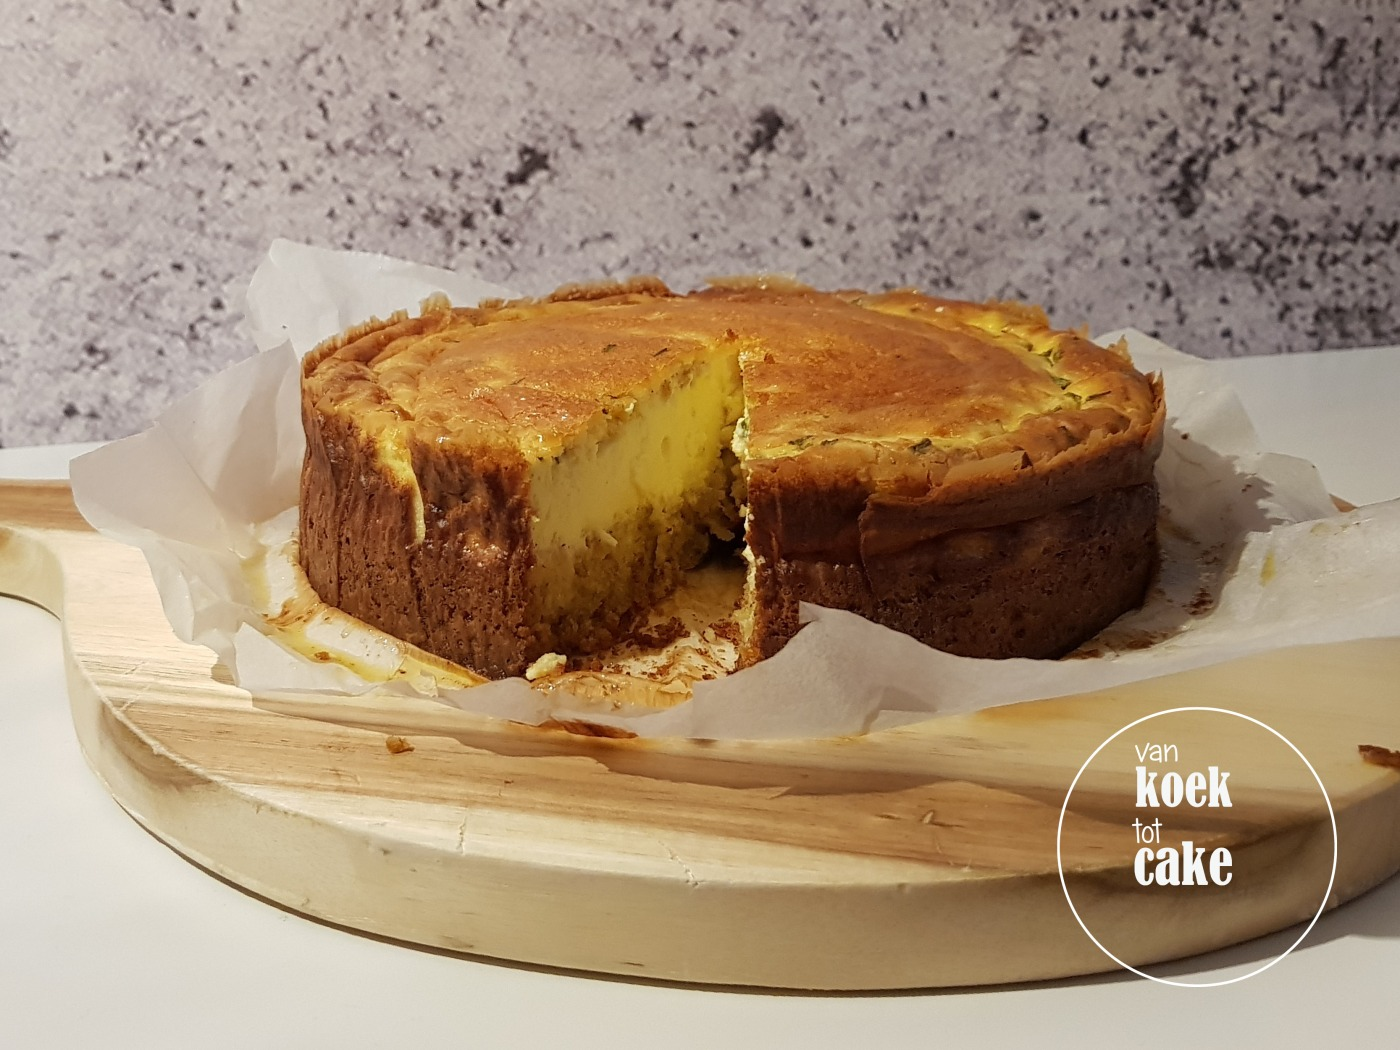 recept hartige cheesecake met knoflook